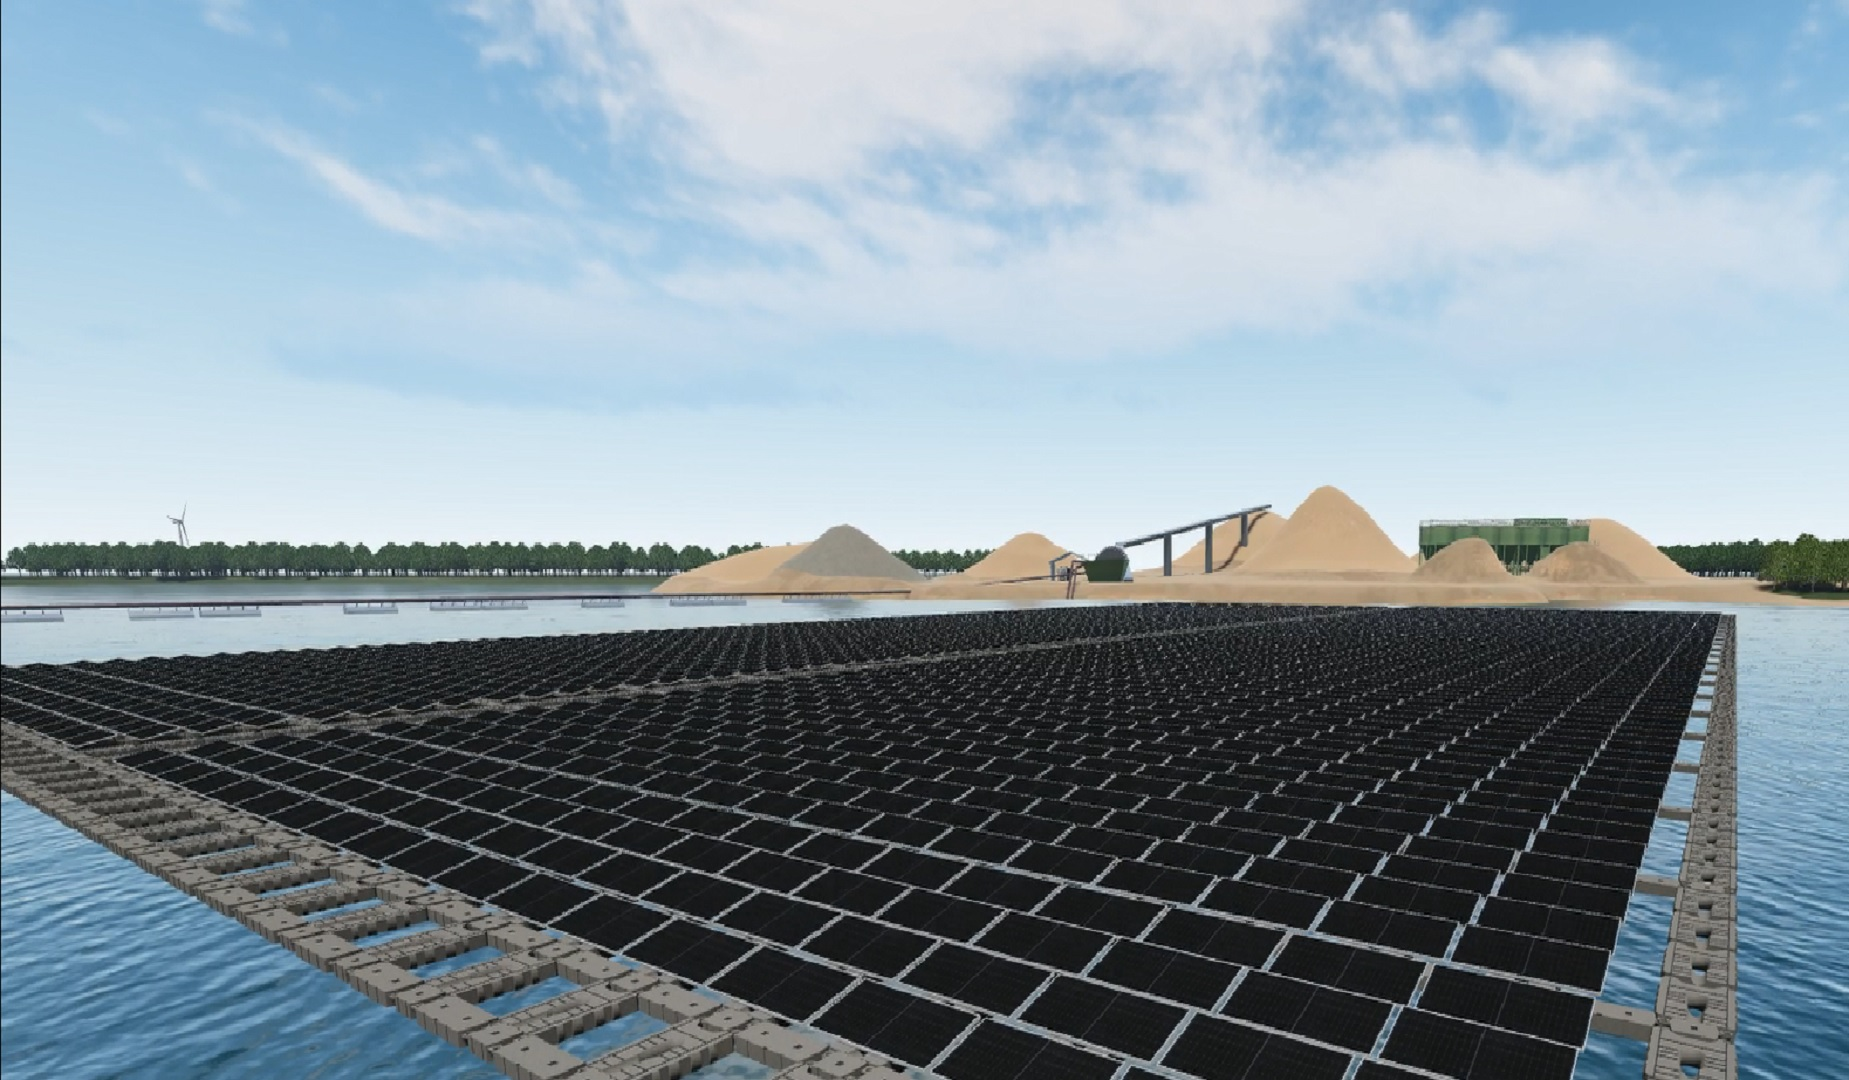 For Vattenfall, the issuance of its second ever green bond follows a move to deploy its first ever floating PV plant in the Netherlands. Image credit: Vattenfall